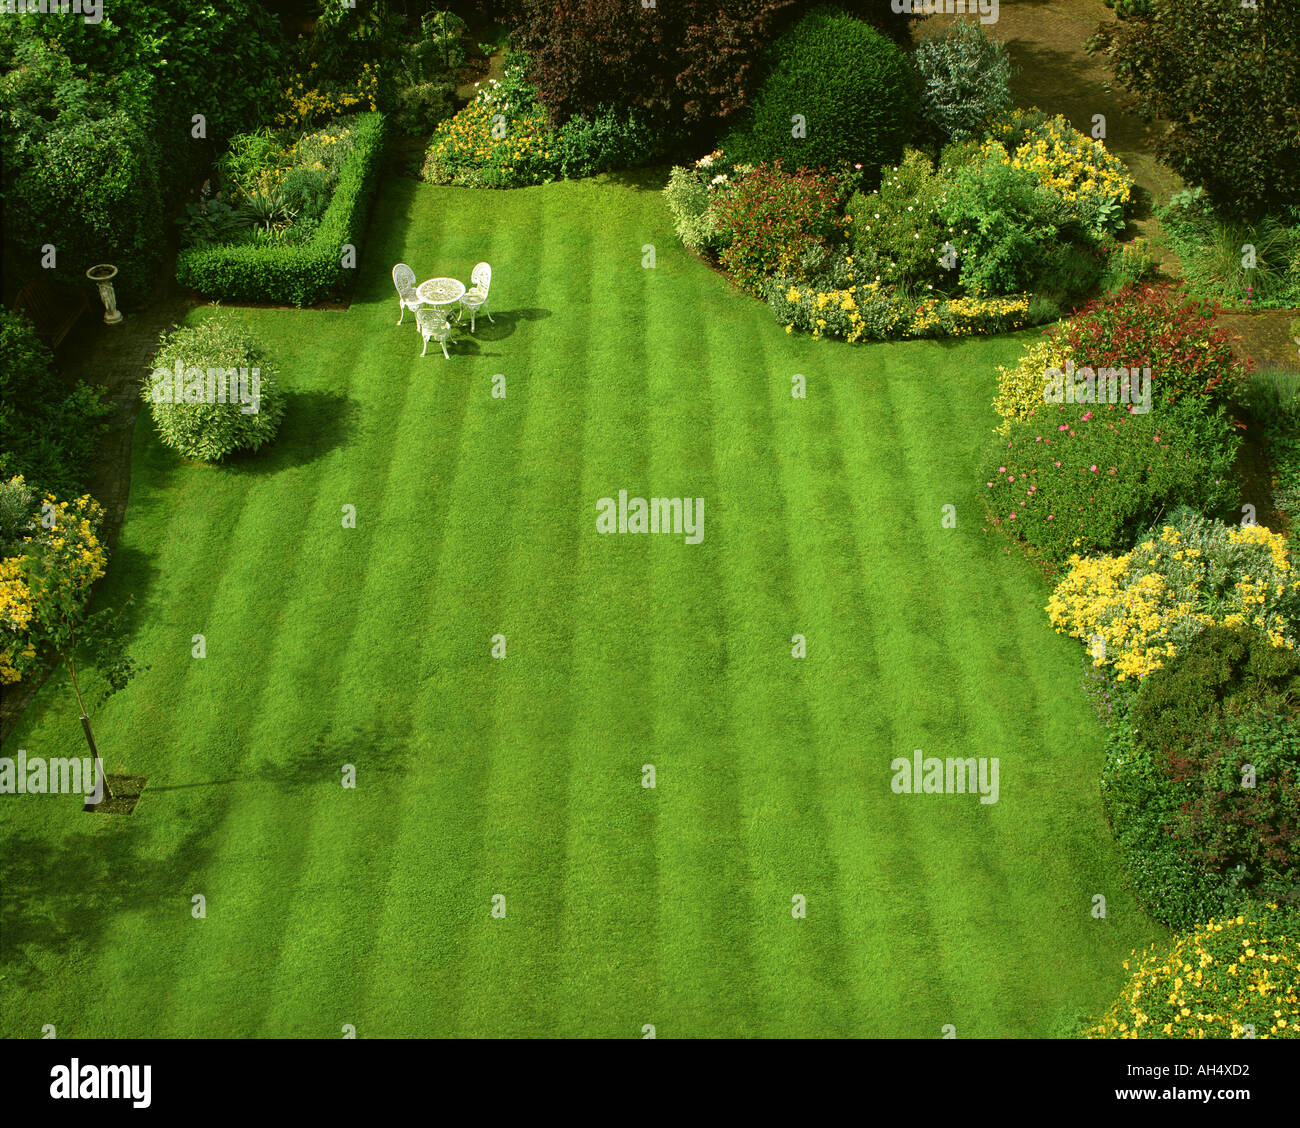 GB - GLOUCESTERSHIRE: Garden Scene at Parkgate in Cheltenham Stock Photo